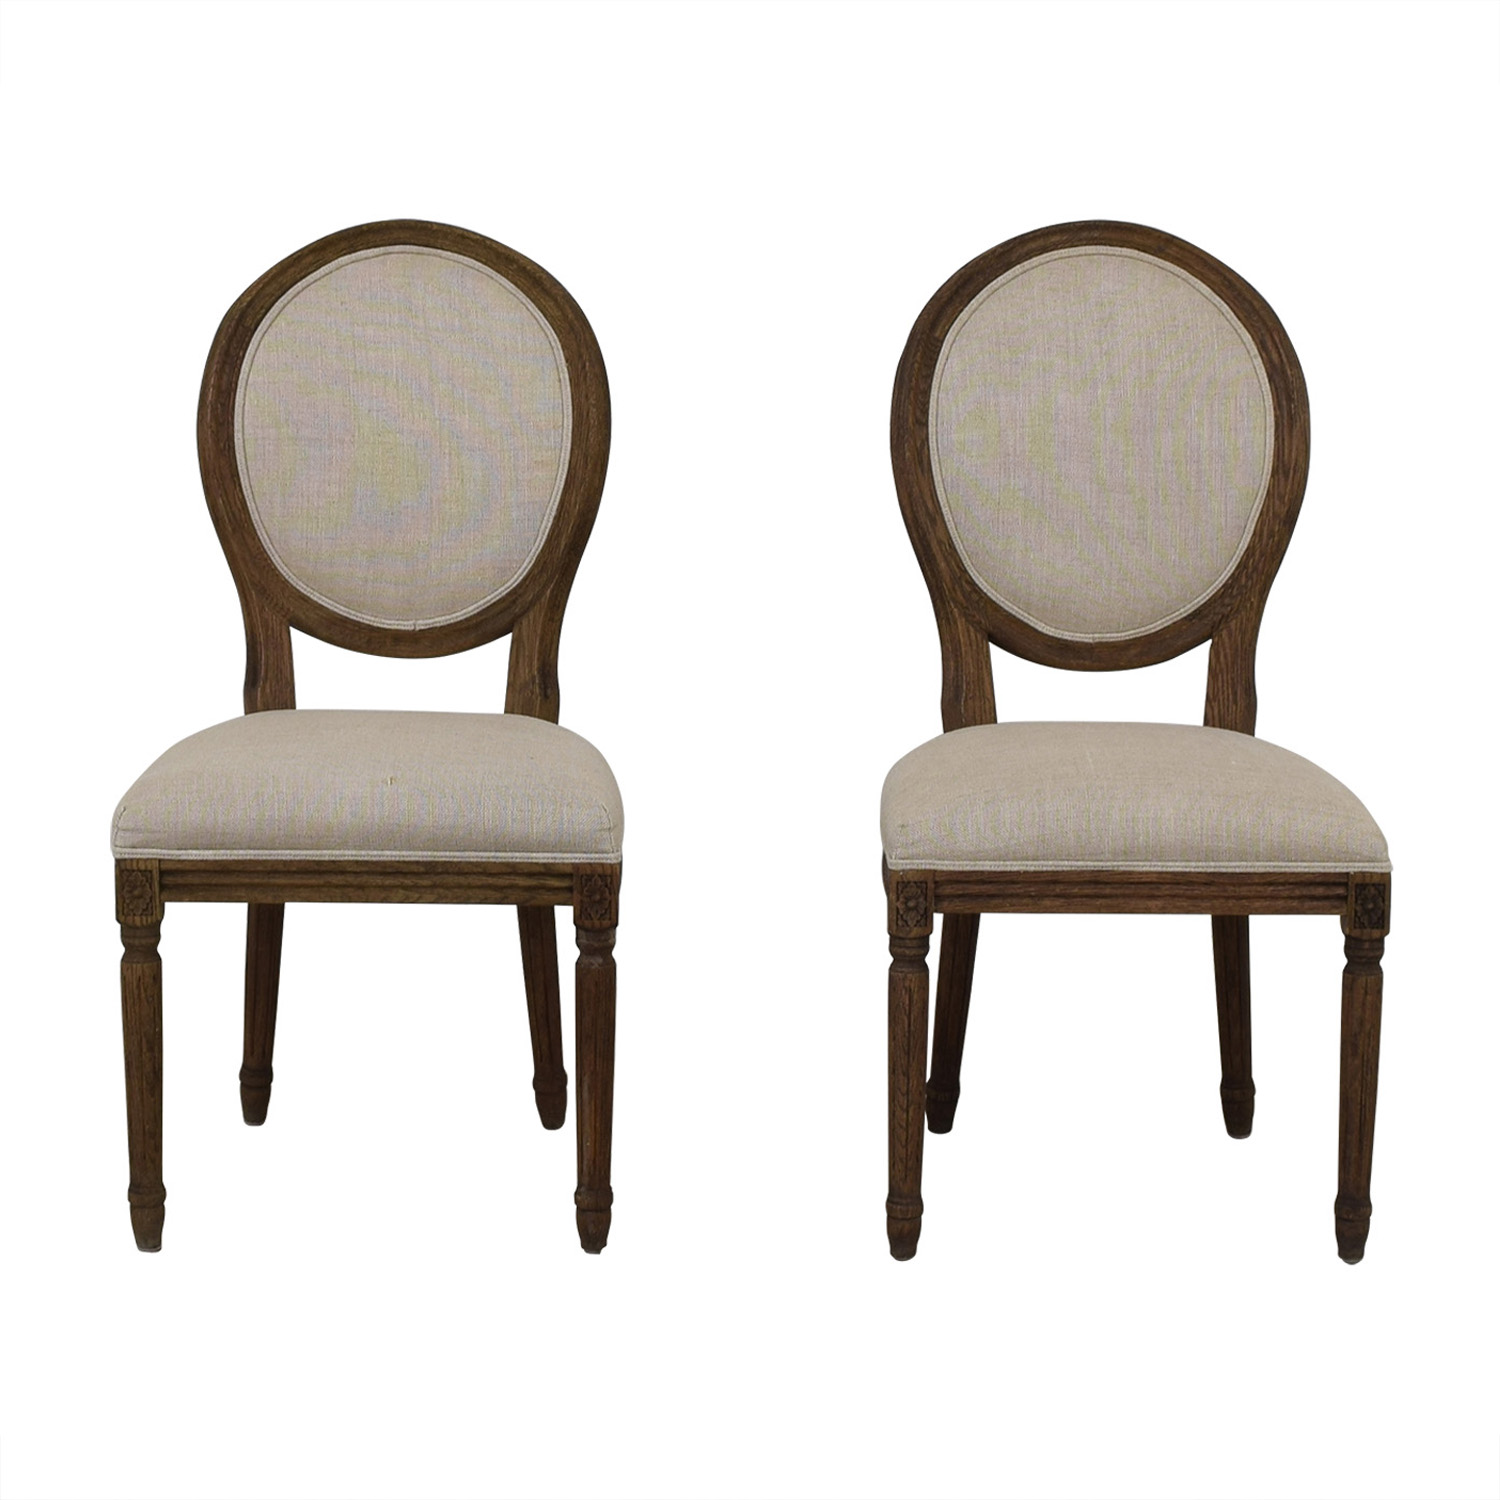 Restoration Hardware Restoration Hardware Vintage French Grey Upholstered Chairs gray